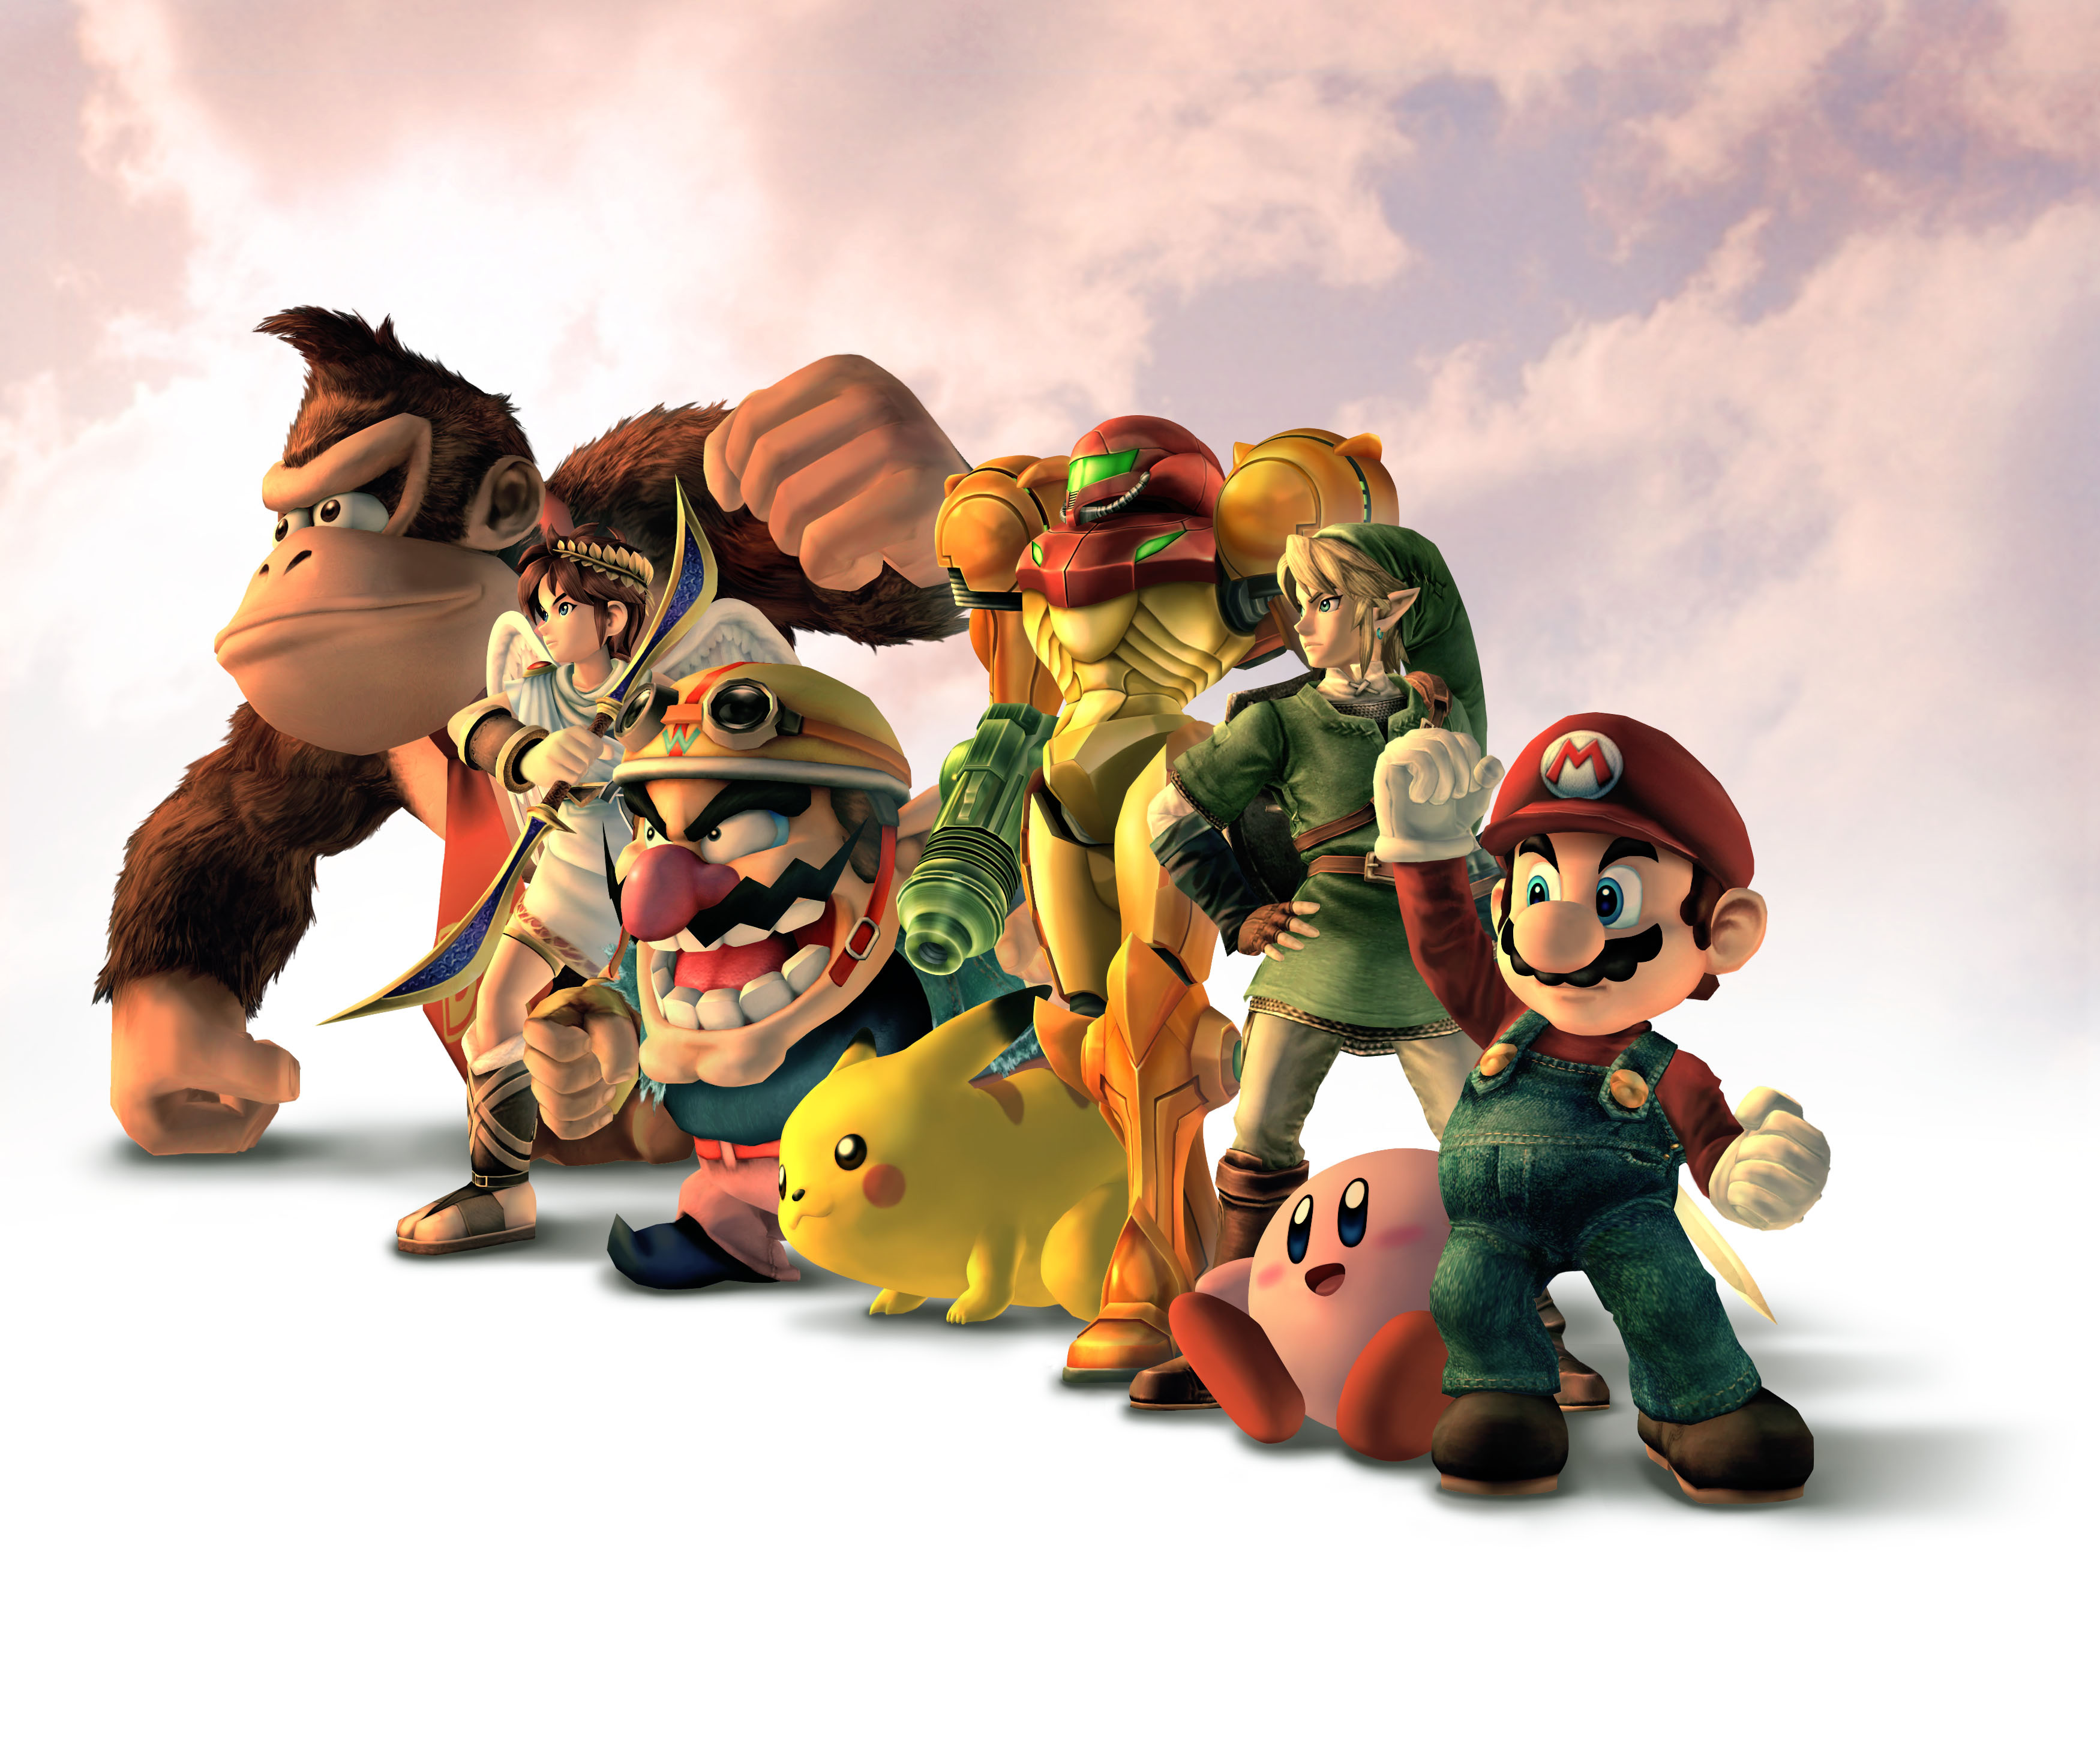 Video Game - Super Smash Bros. Wallpaper